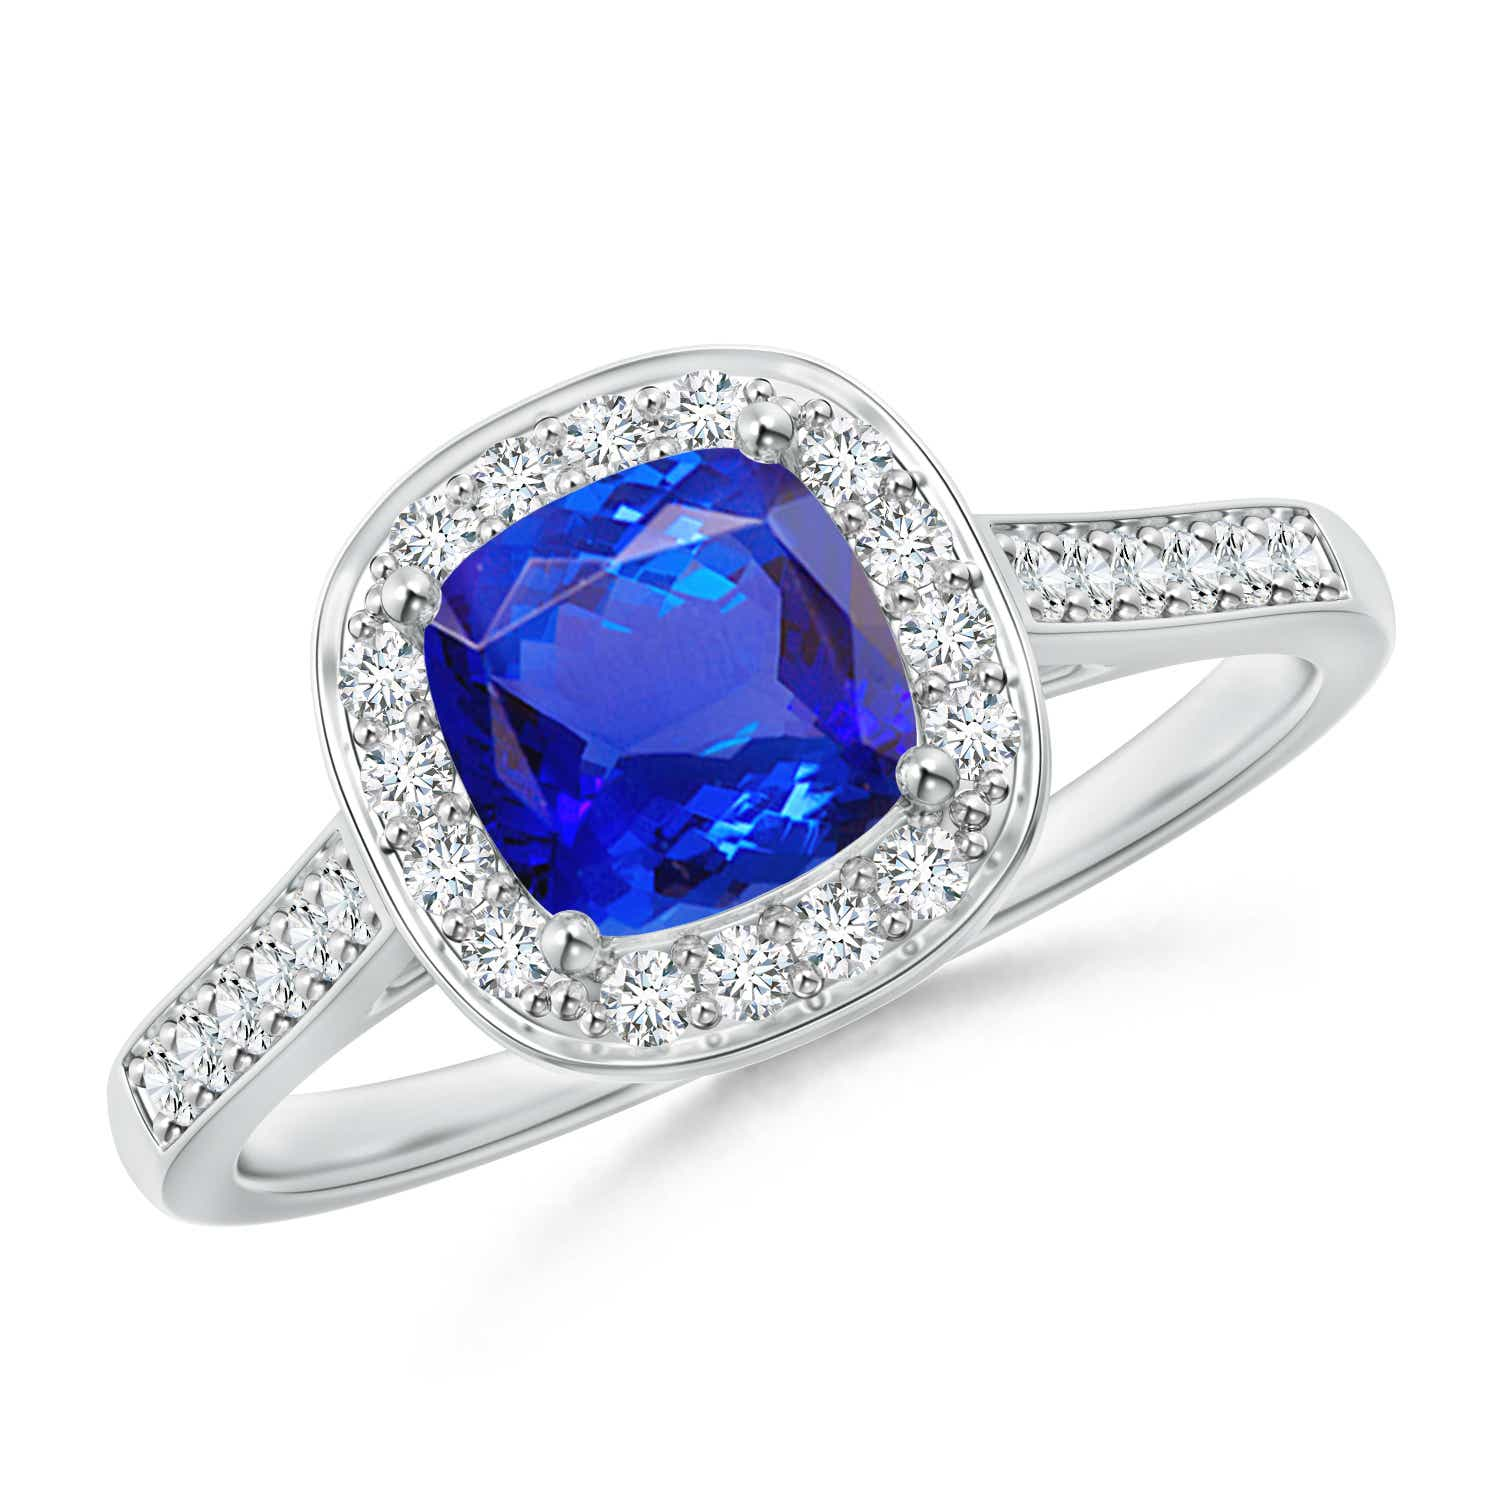 Angara GIA Certified Oval Tanzanite Cocktail Ring with Diamond Halo nGic8uS